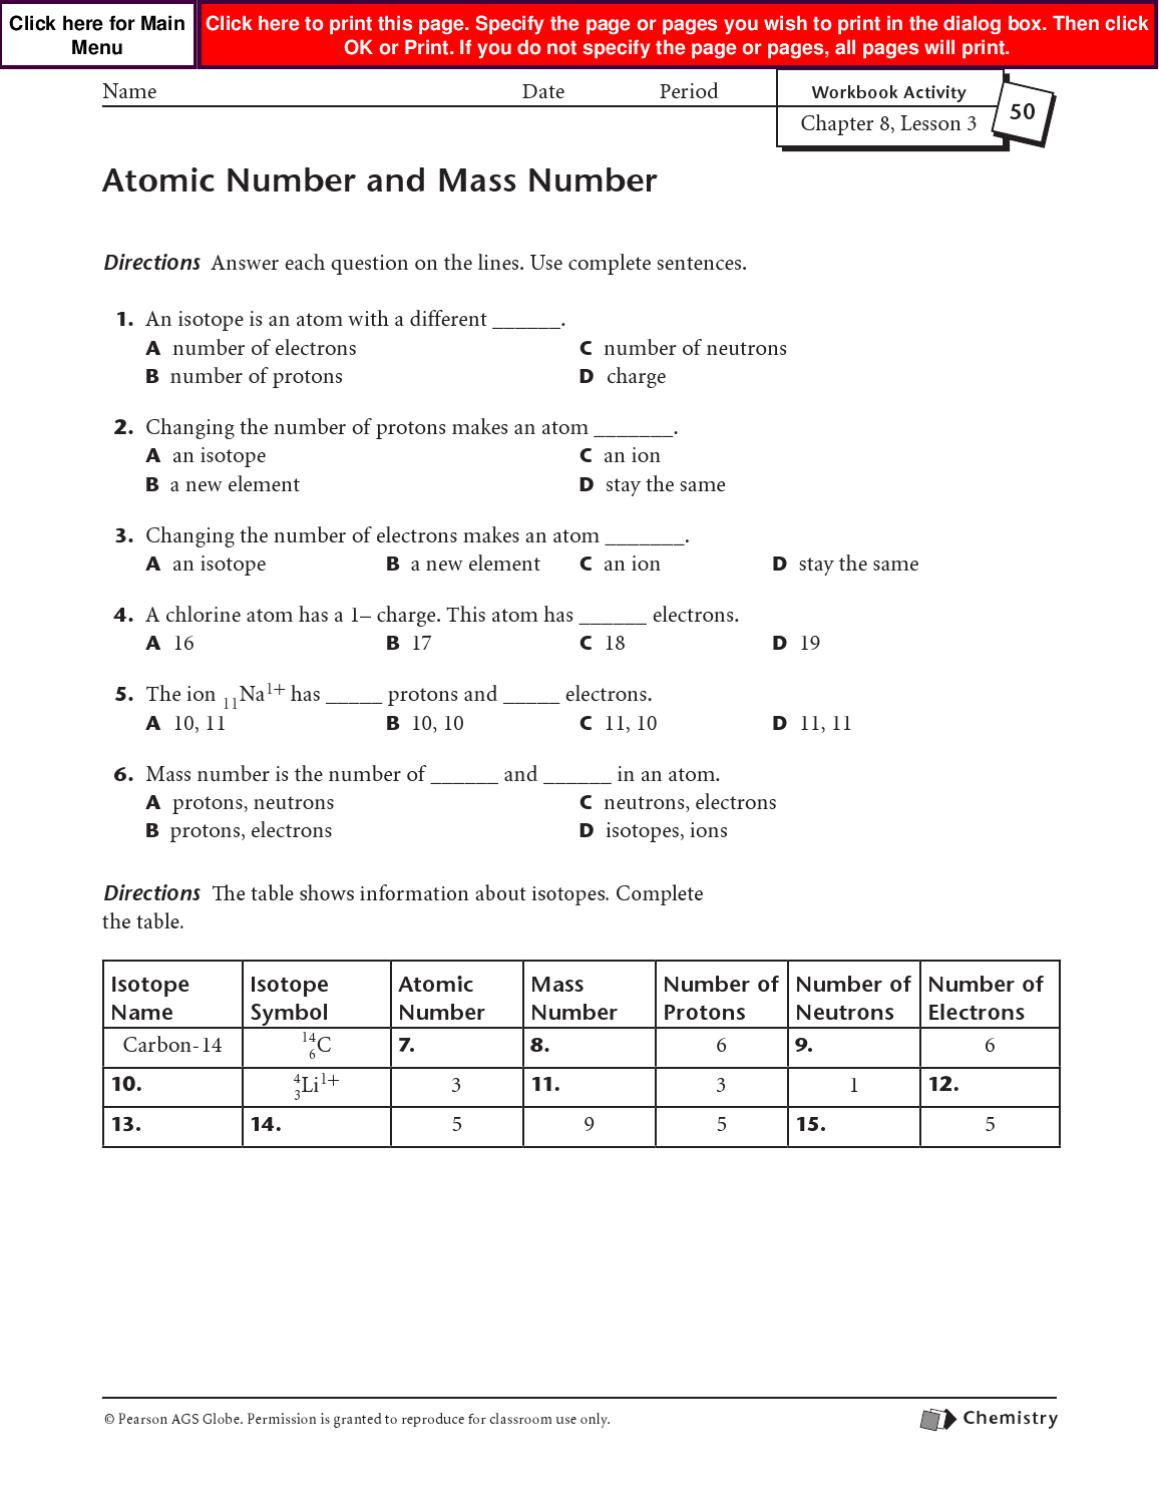 Atomic Mass And Number Worksheet Worksheet For Kindergarten